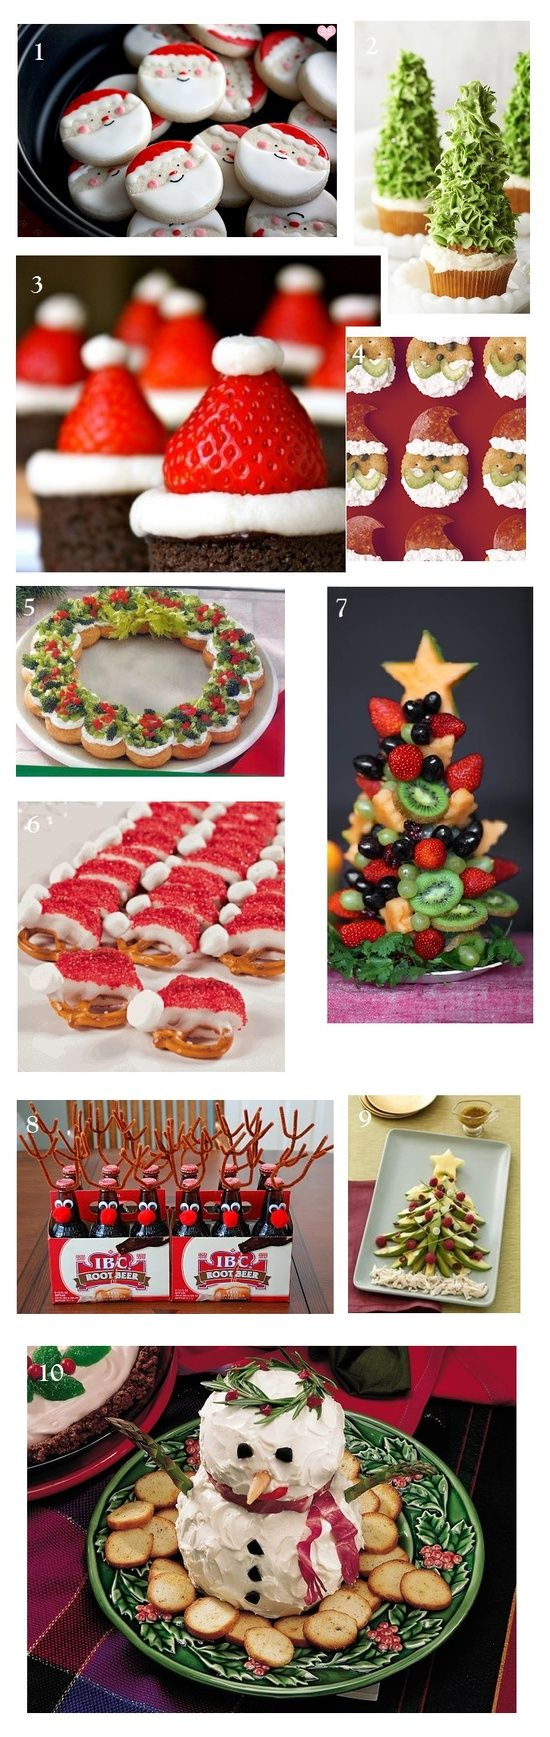 Awesome Christmas Party Ideas Part - 30: 10 Awesome Christmas Party And Holiday Food Ideas And Recipes